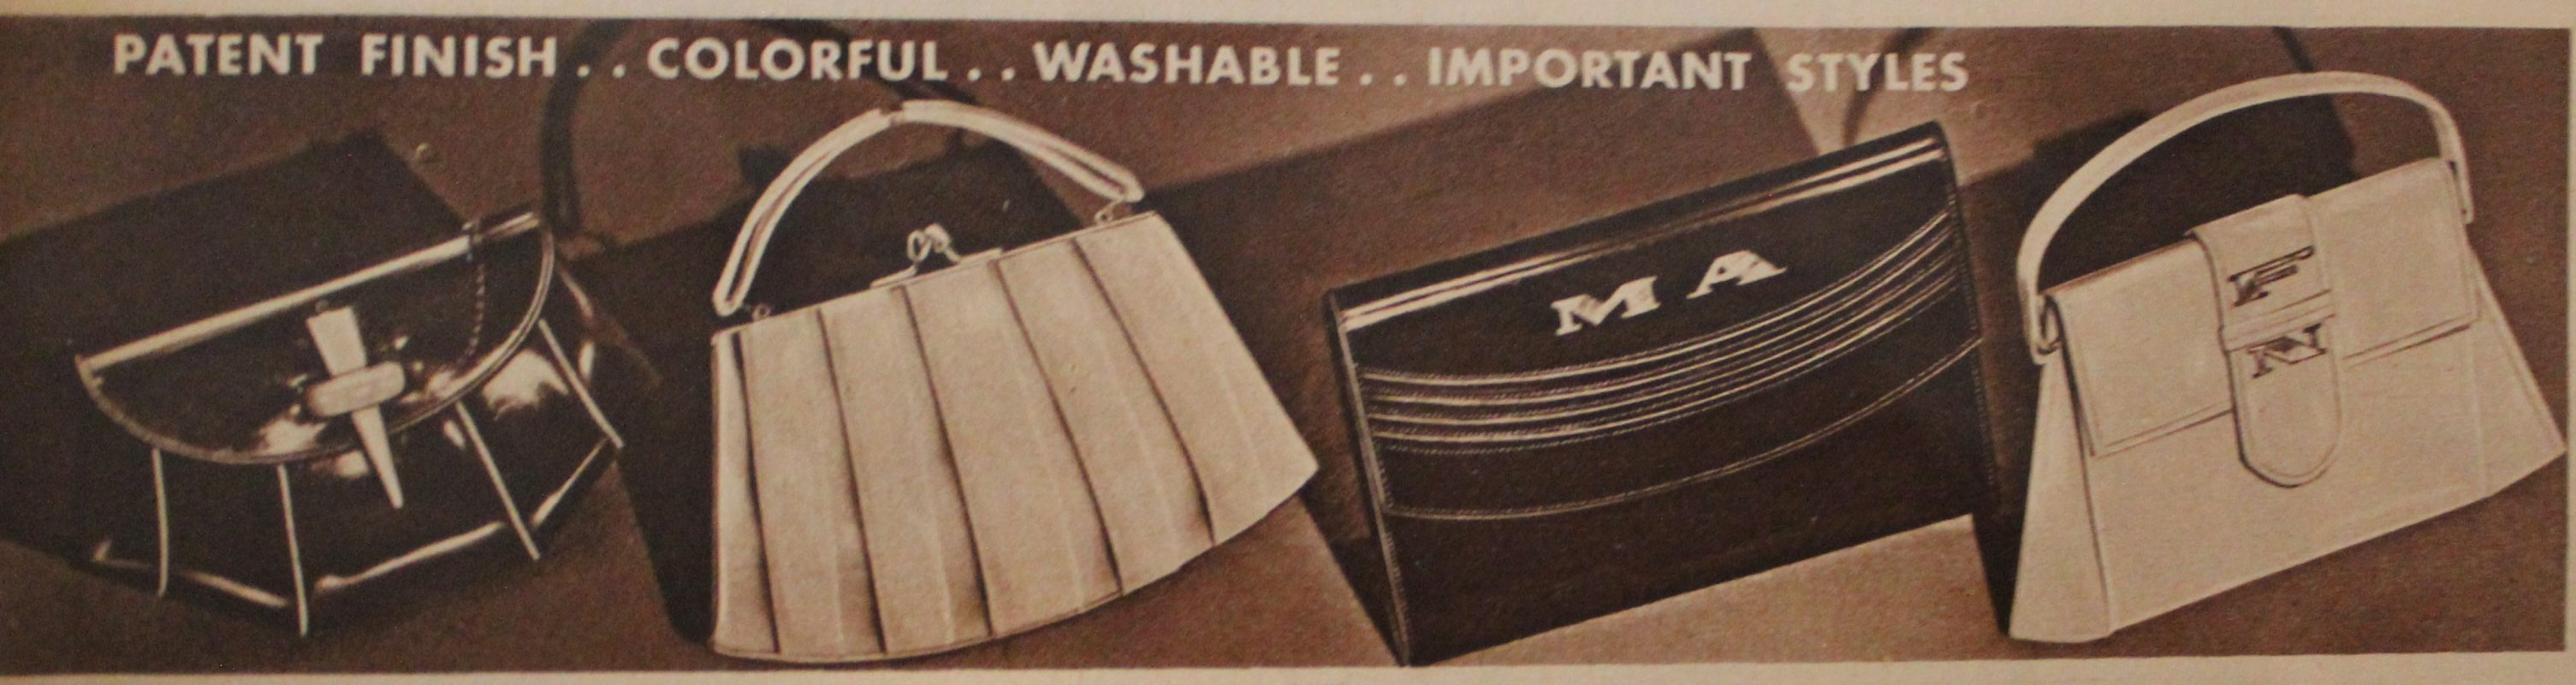 1930s The Two Bags On Right Feature Monogram Letters In Silver Or Gold